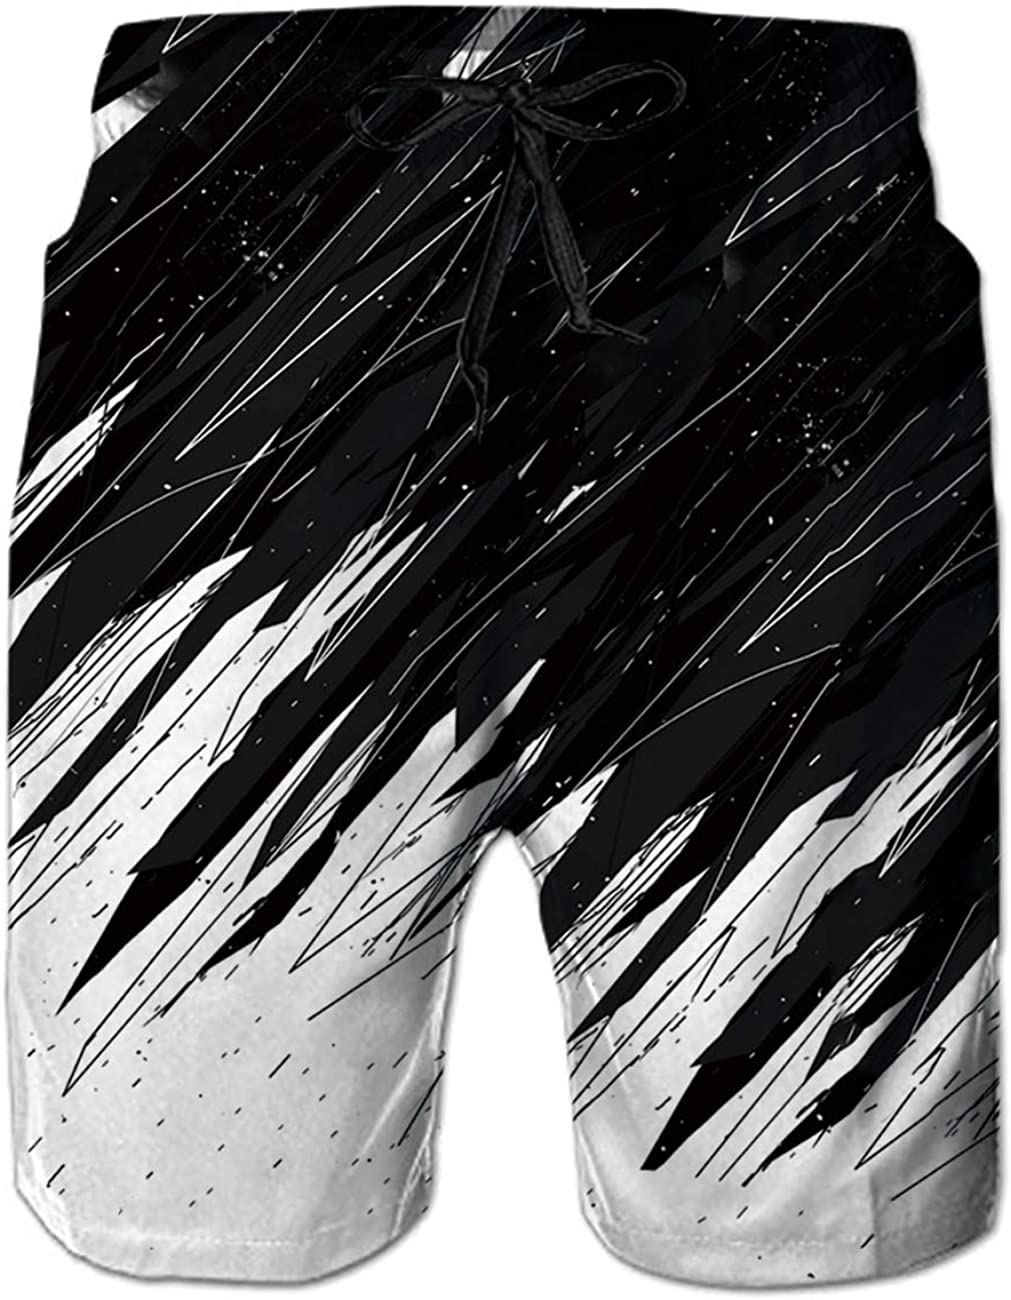 uideazone Mens Swim Trunks Elastic Waist Surfing Beach Board Shorts Quick Dry Board Shorts Bathing Suit with Mesh Lining